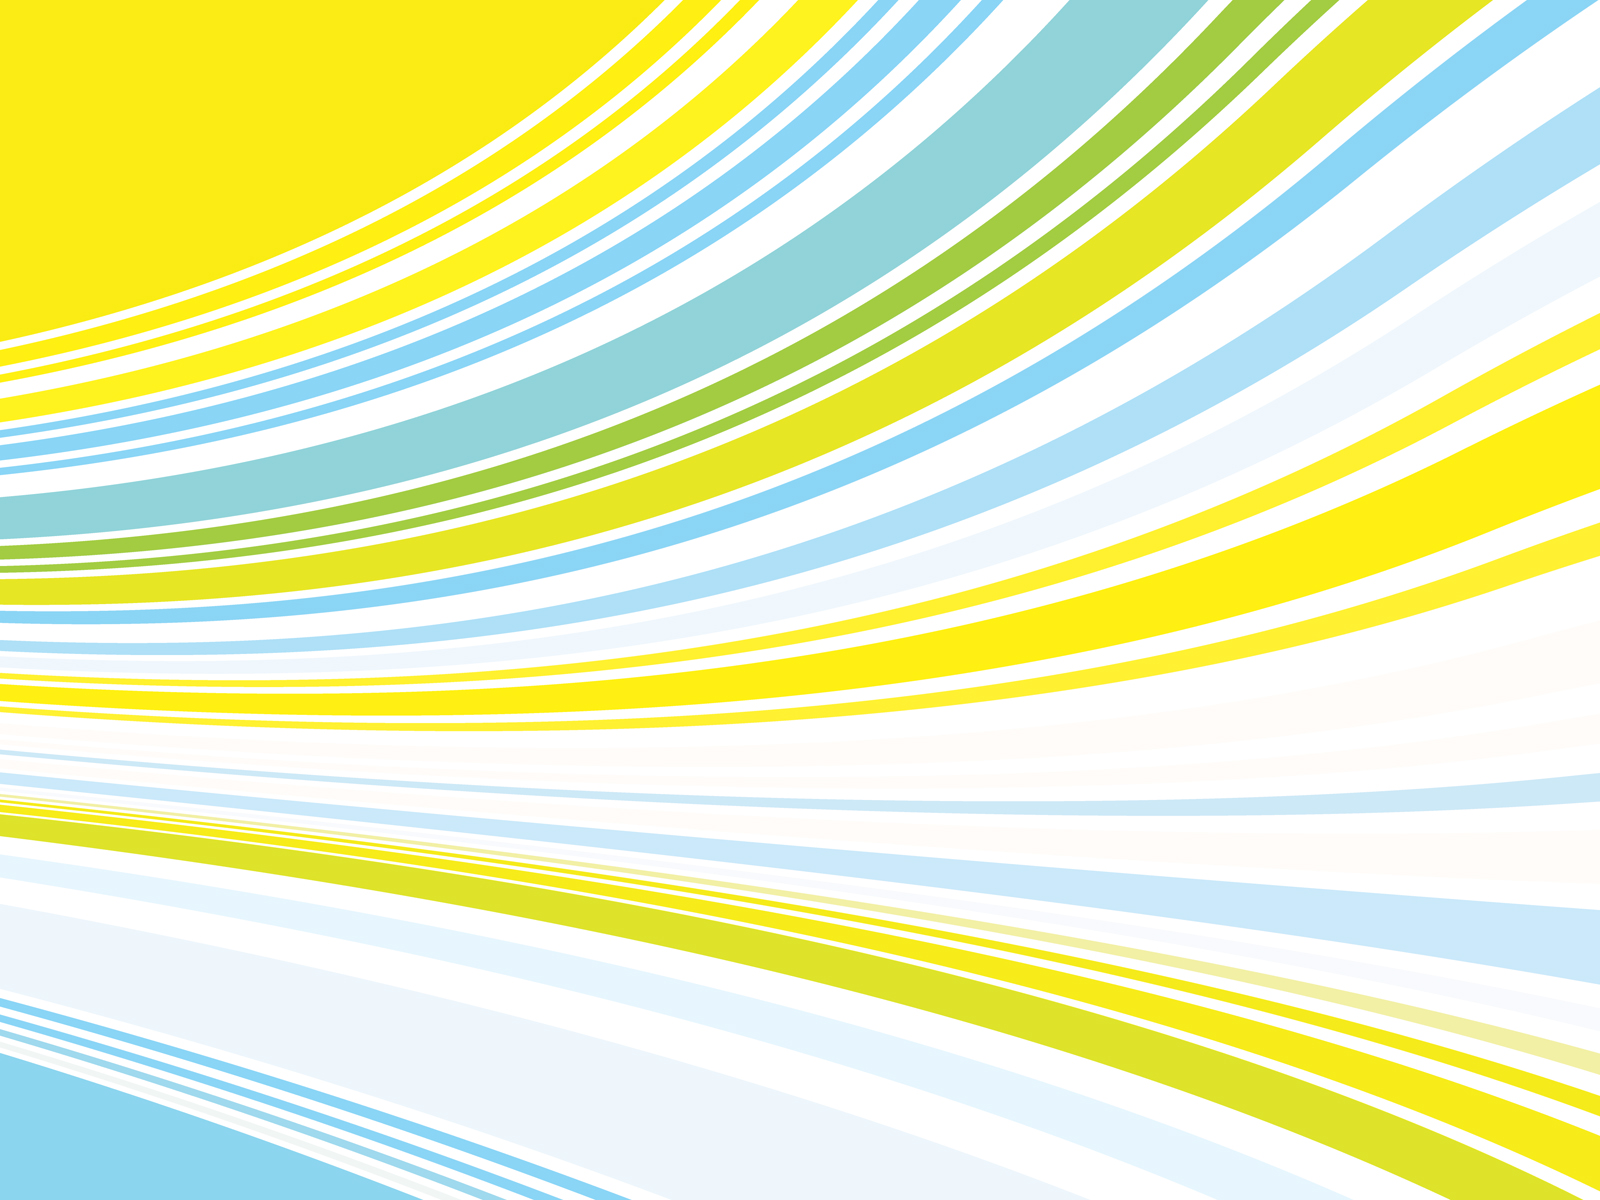 Color Line Design : Smooth lines for abstract backgrounds blue